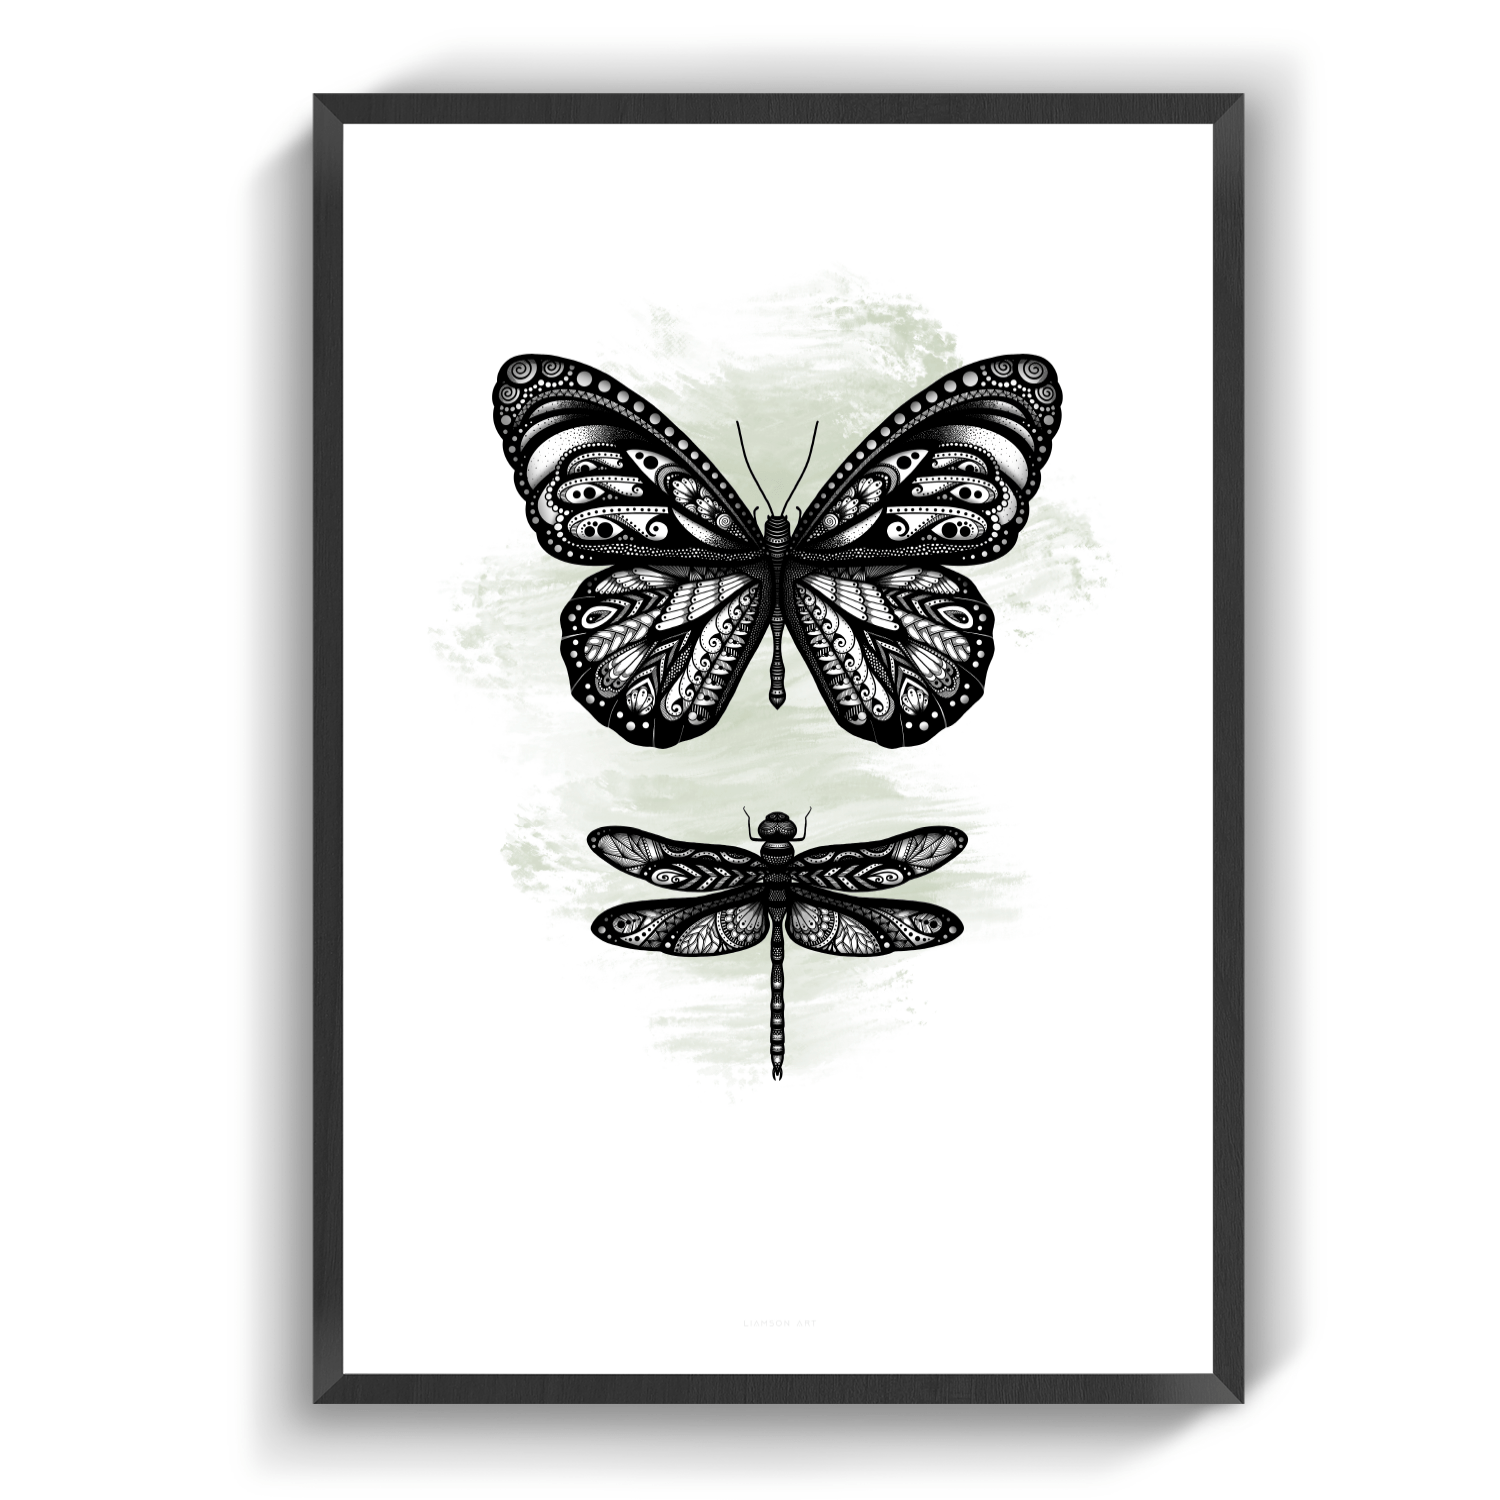 Butterfly&Dragonfly